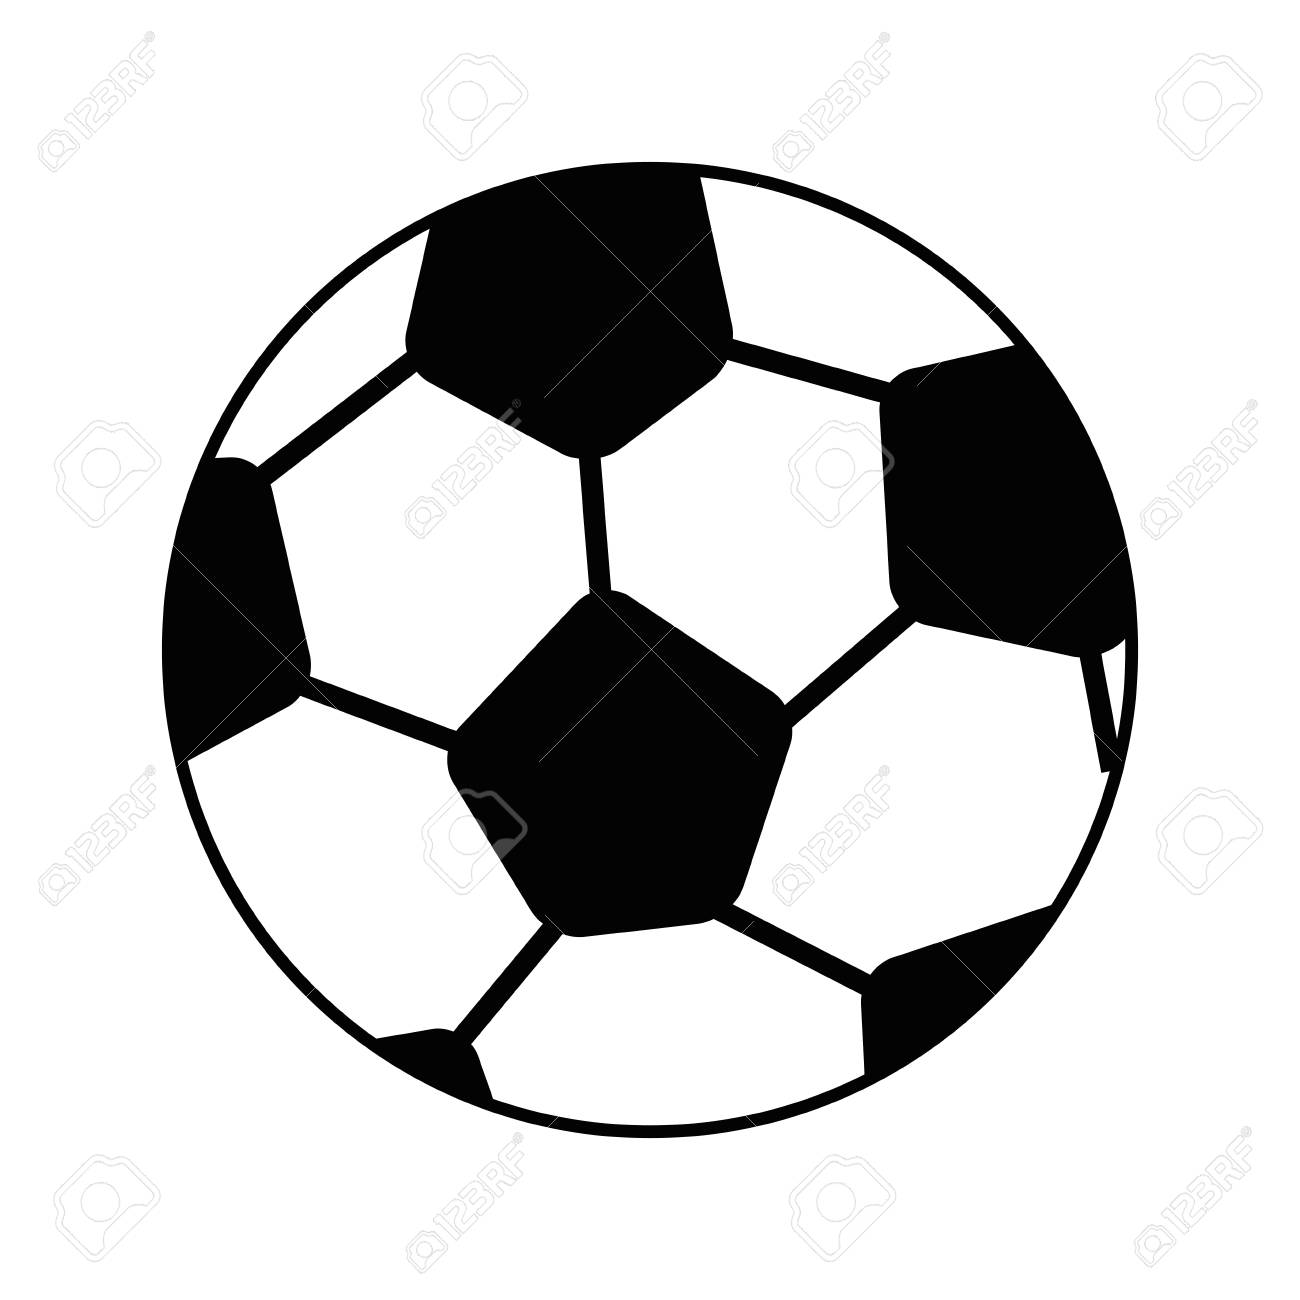 Image result for soccer ball cartoon